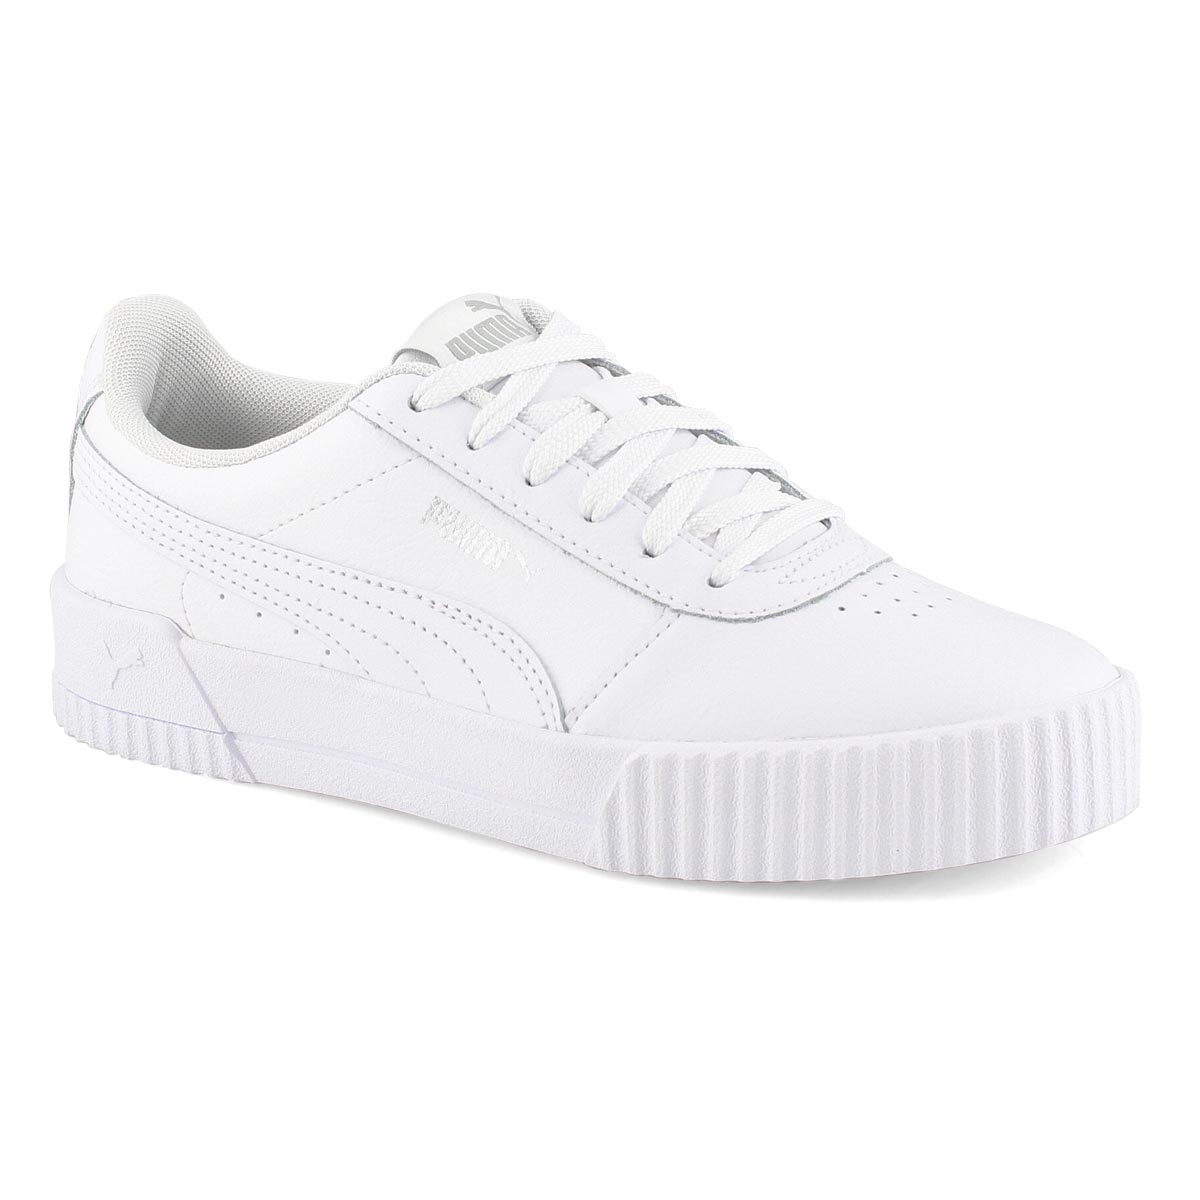 Lds Carina L wht/wht lace up sneaker